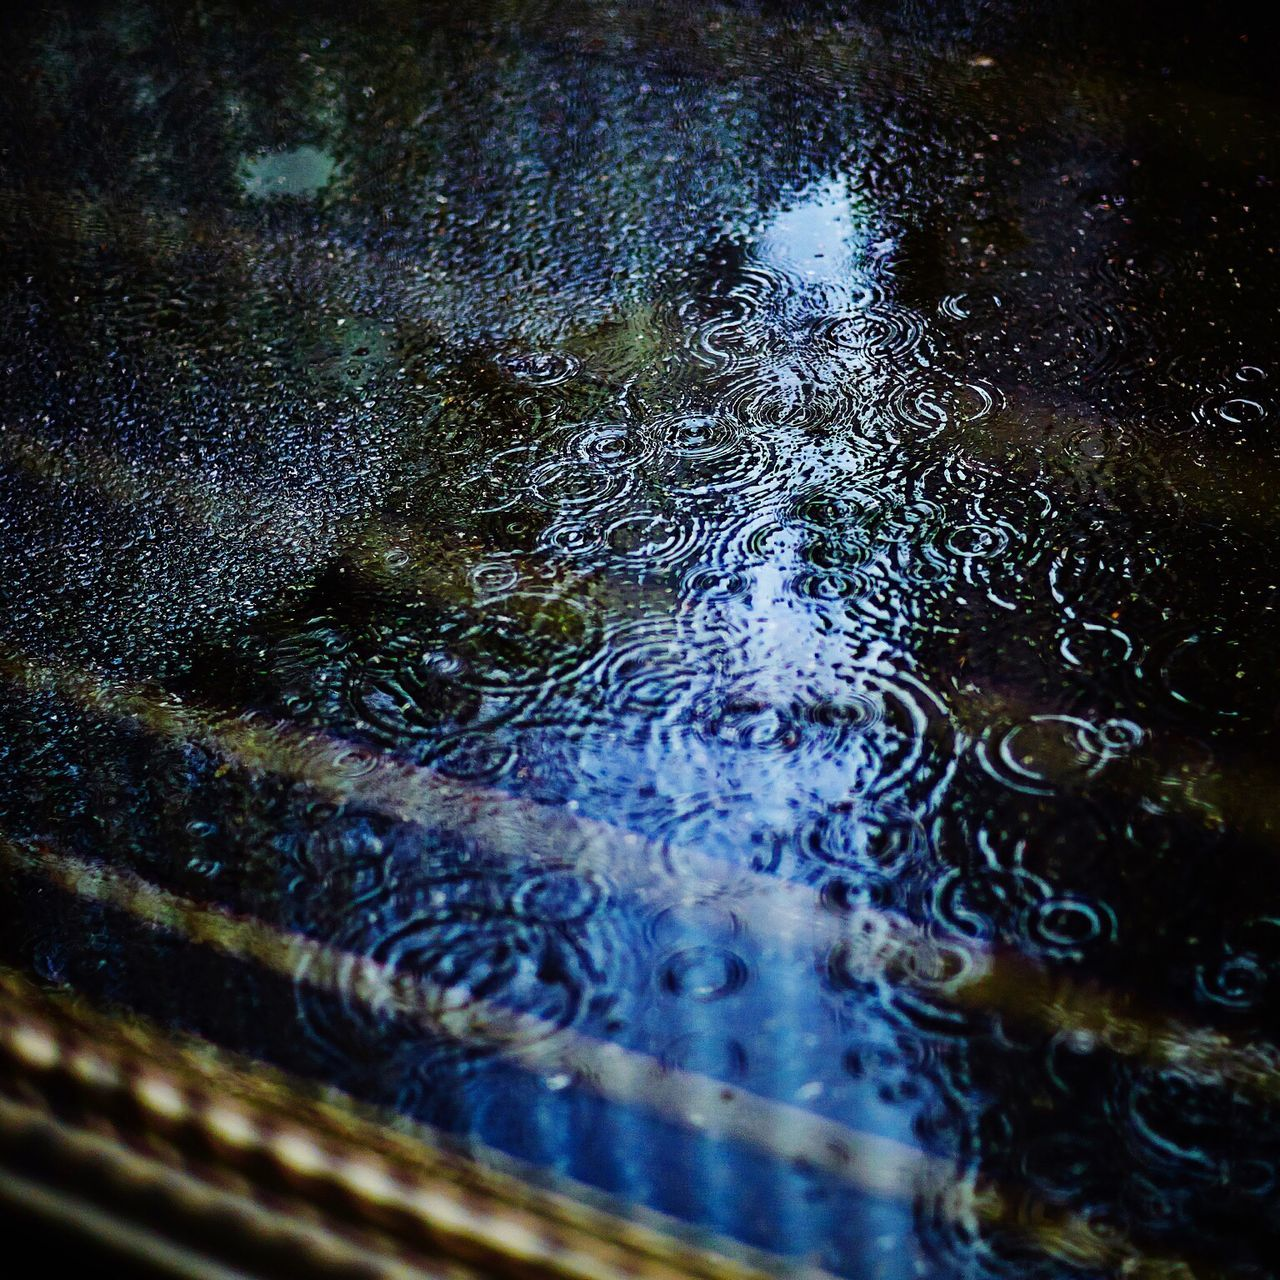 Streetphotography Rainy Days Reflection Light And Shadow Water Droplets EyeEm Best Shots